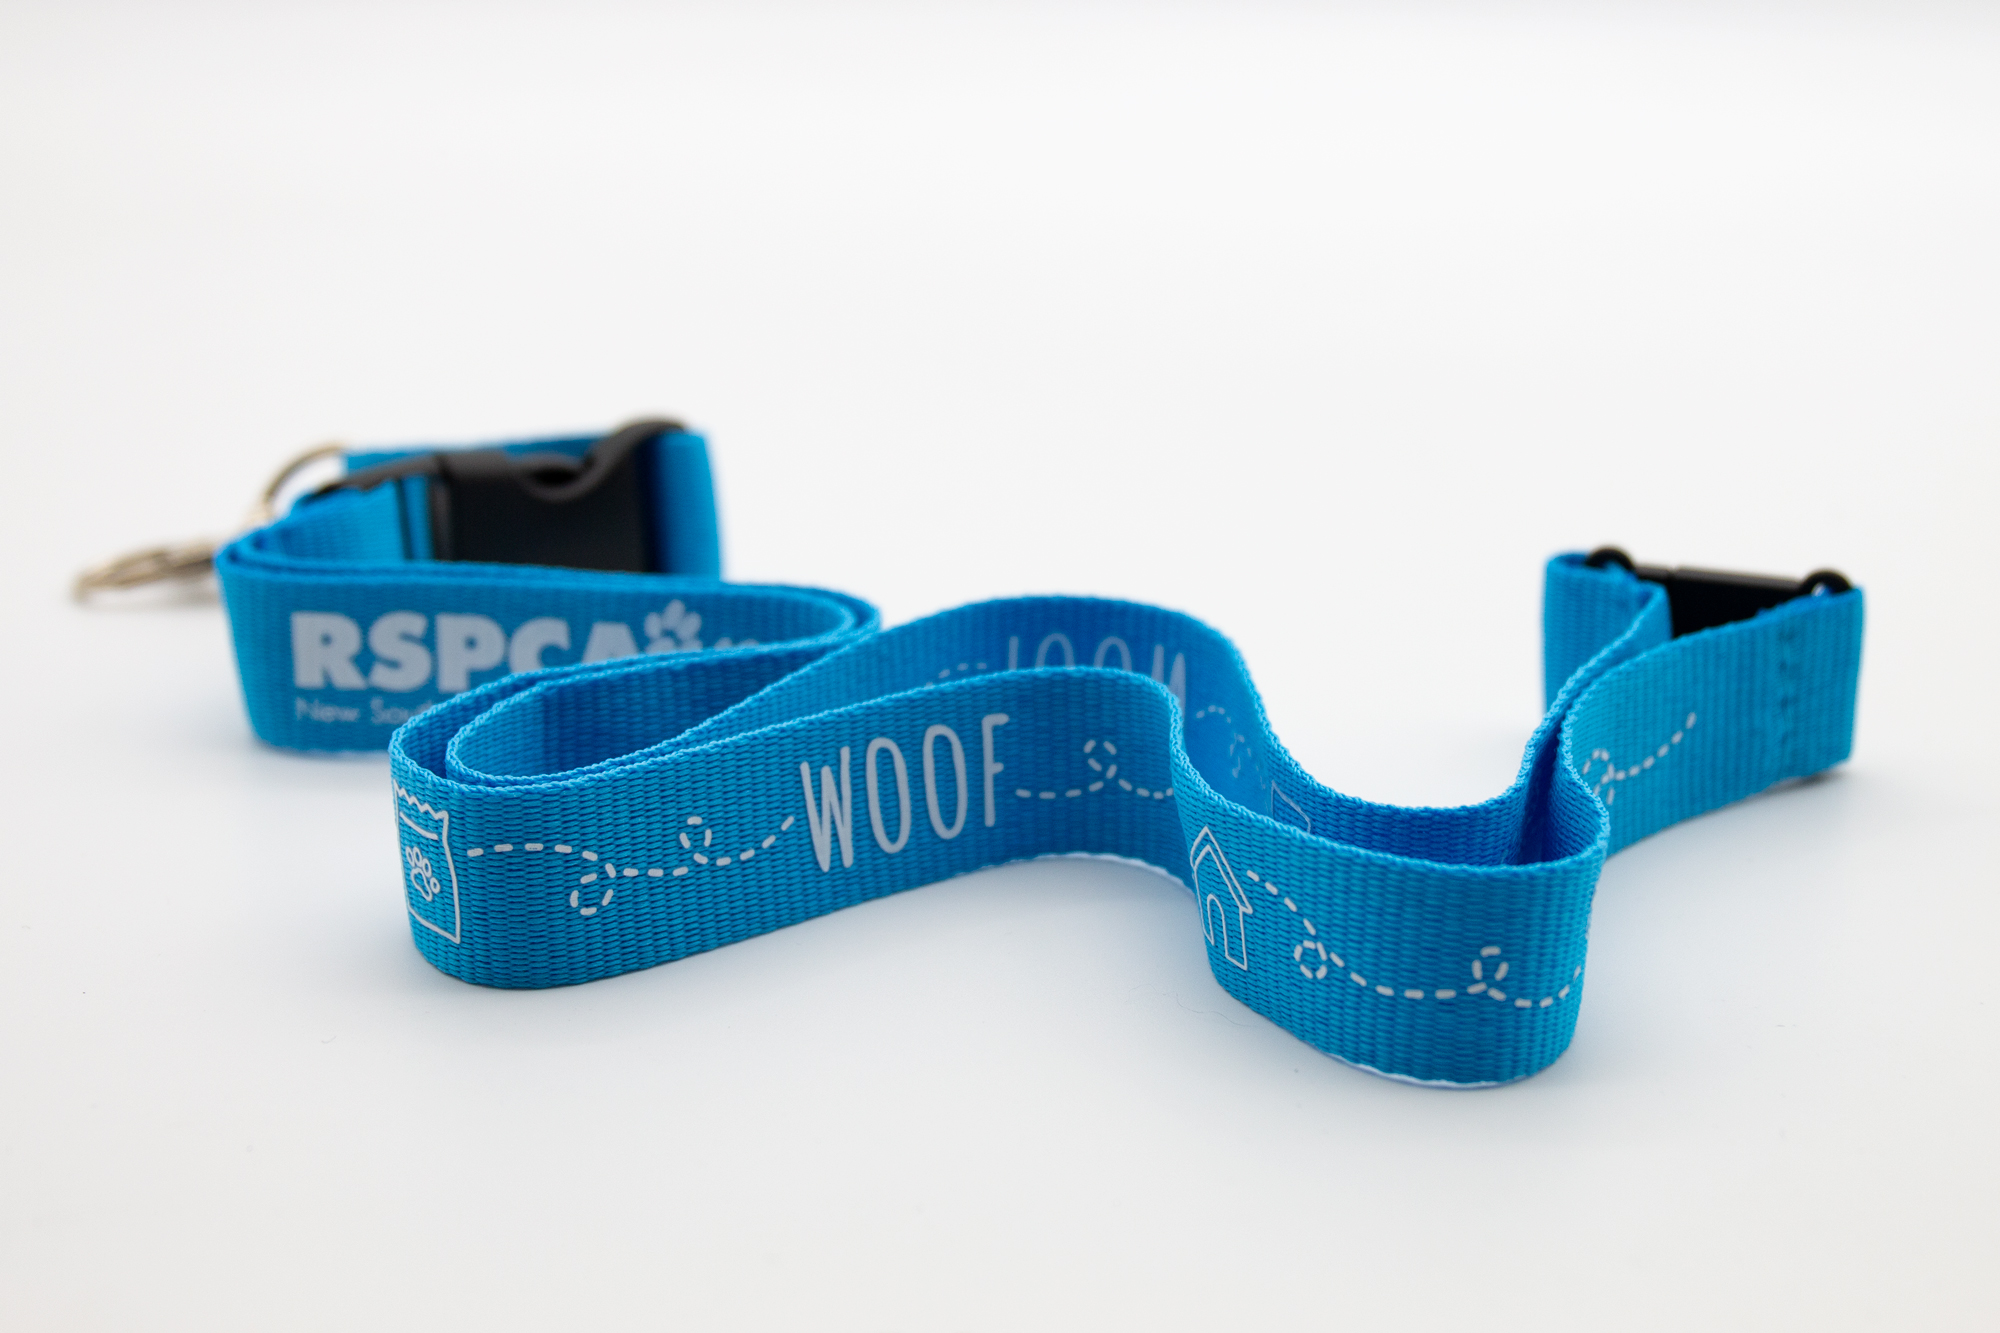 Lanyard_Woof_close-up